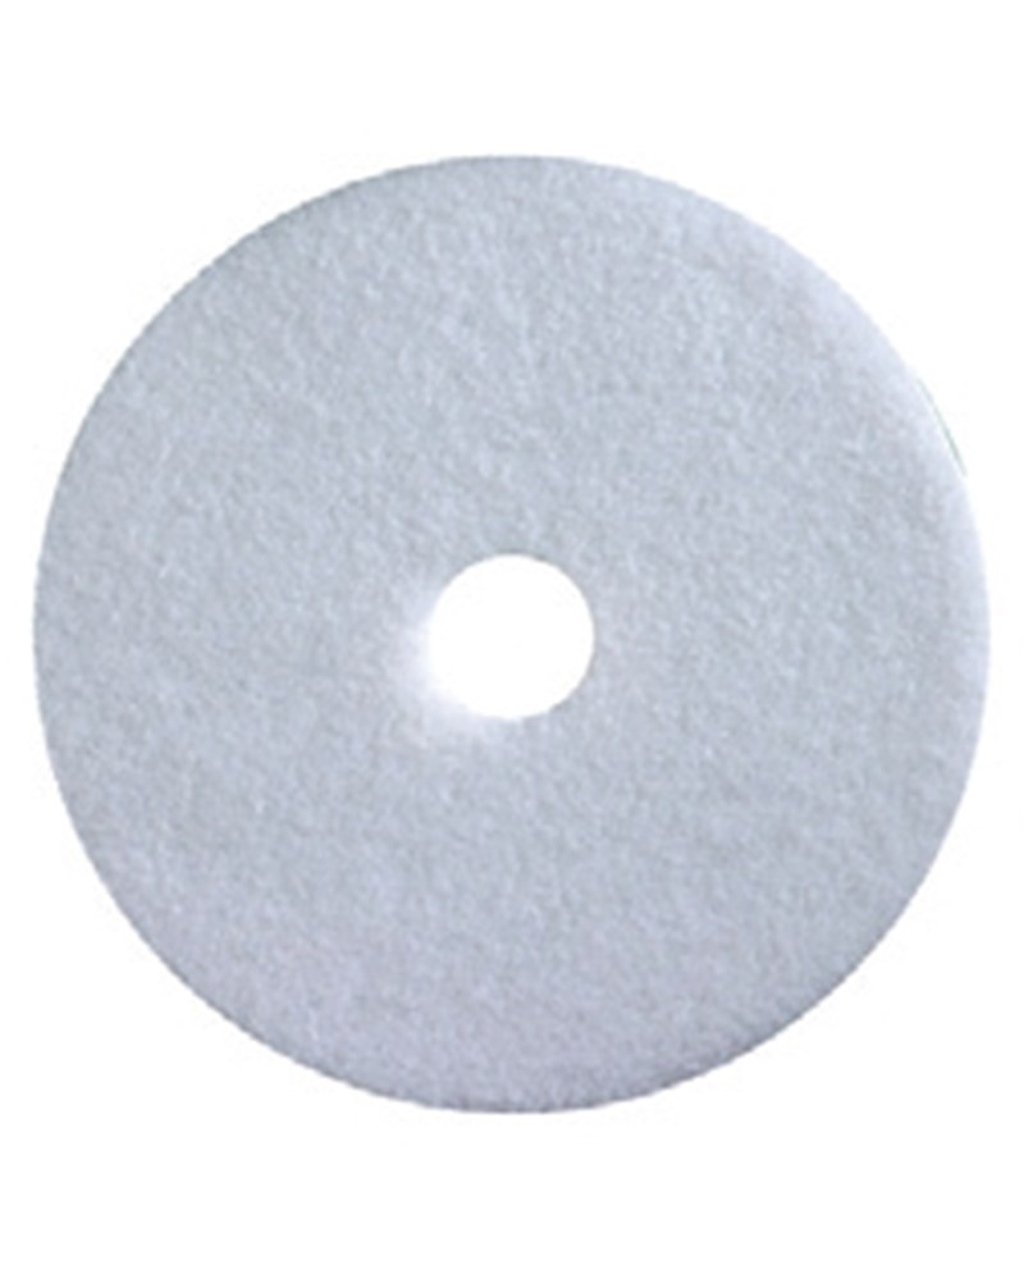 17 White Buffing Pads (Pack of 5)